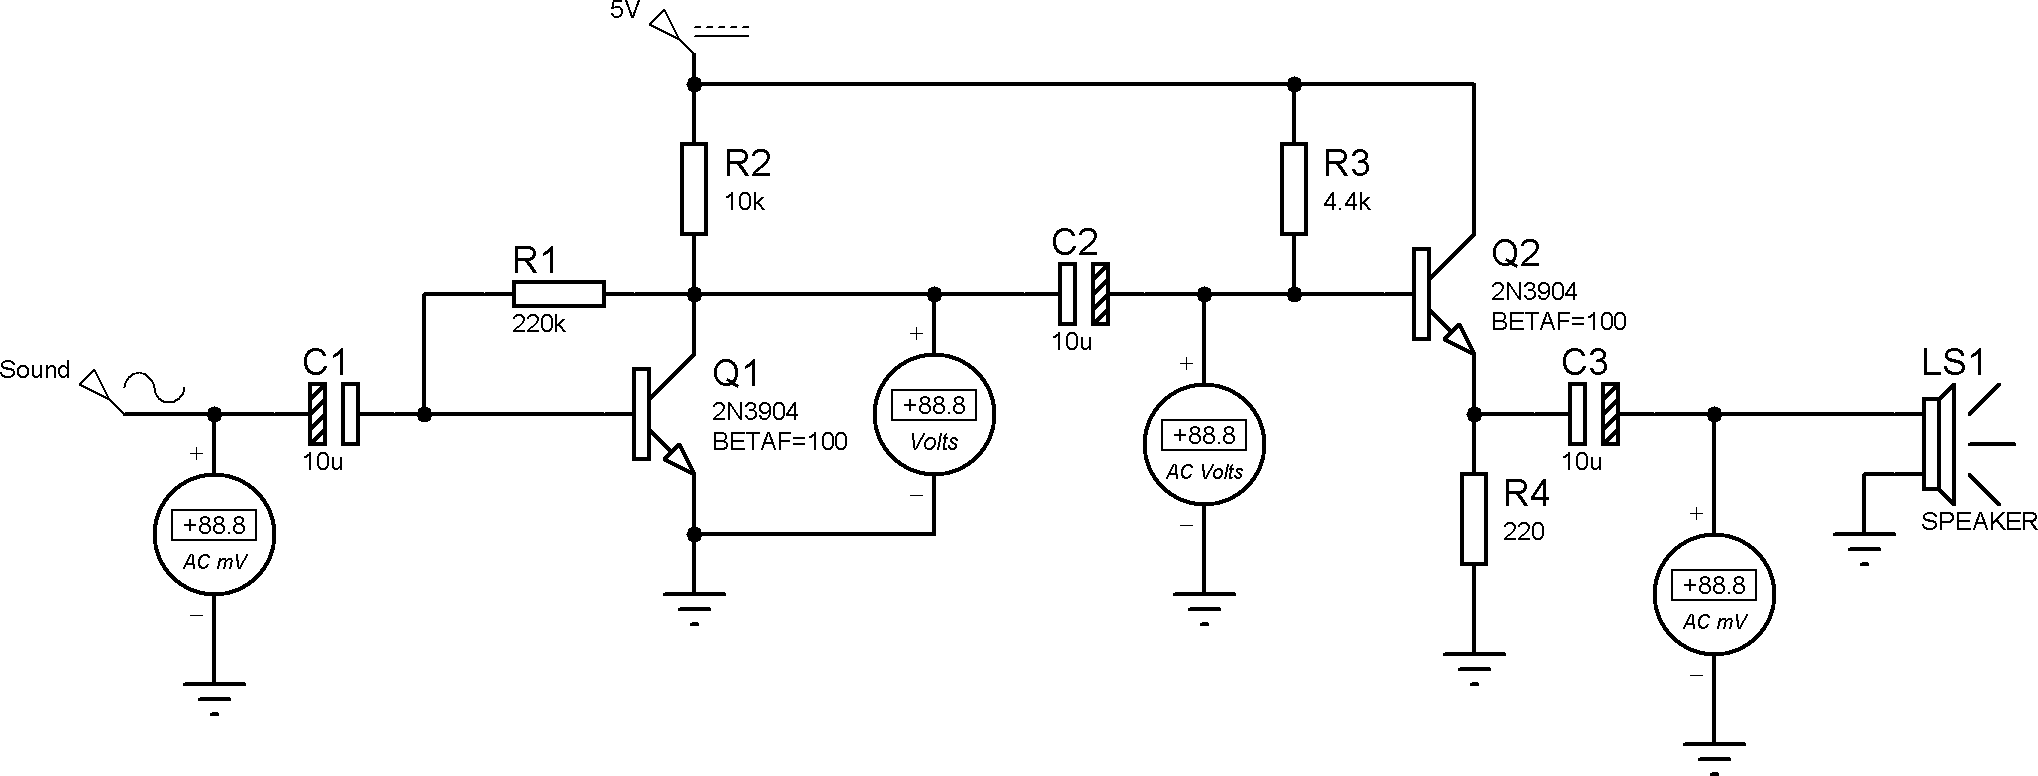 Electret microphone amplifier for computer using